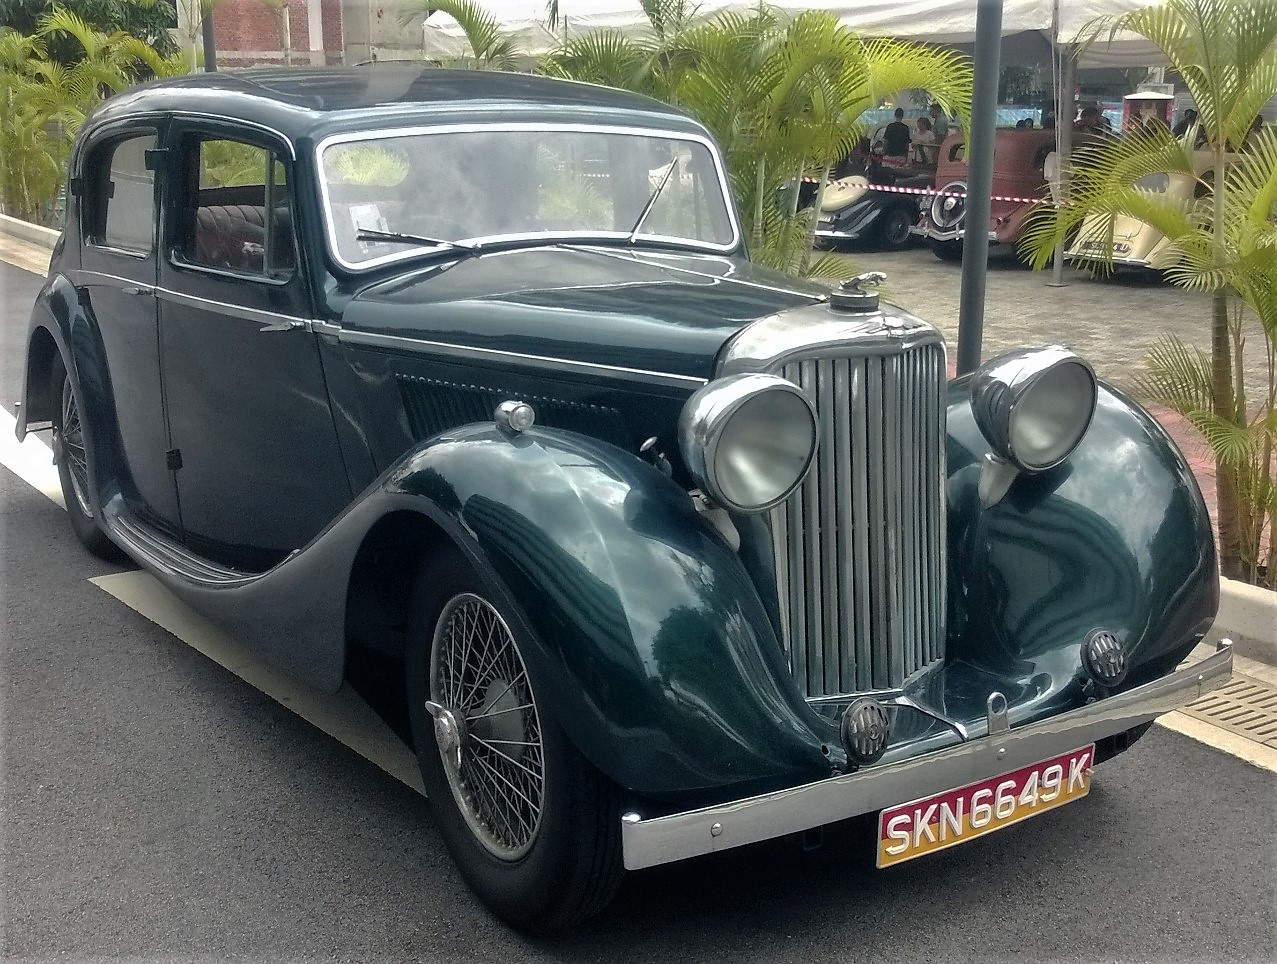 Singapore Vintage and Classic Cars: More than an old car #21: SS ...